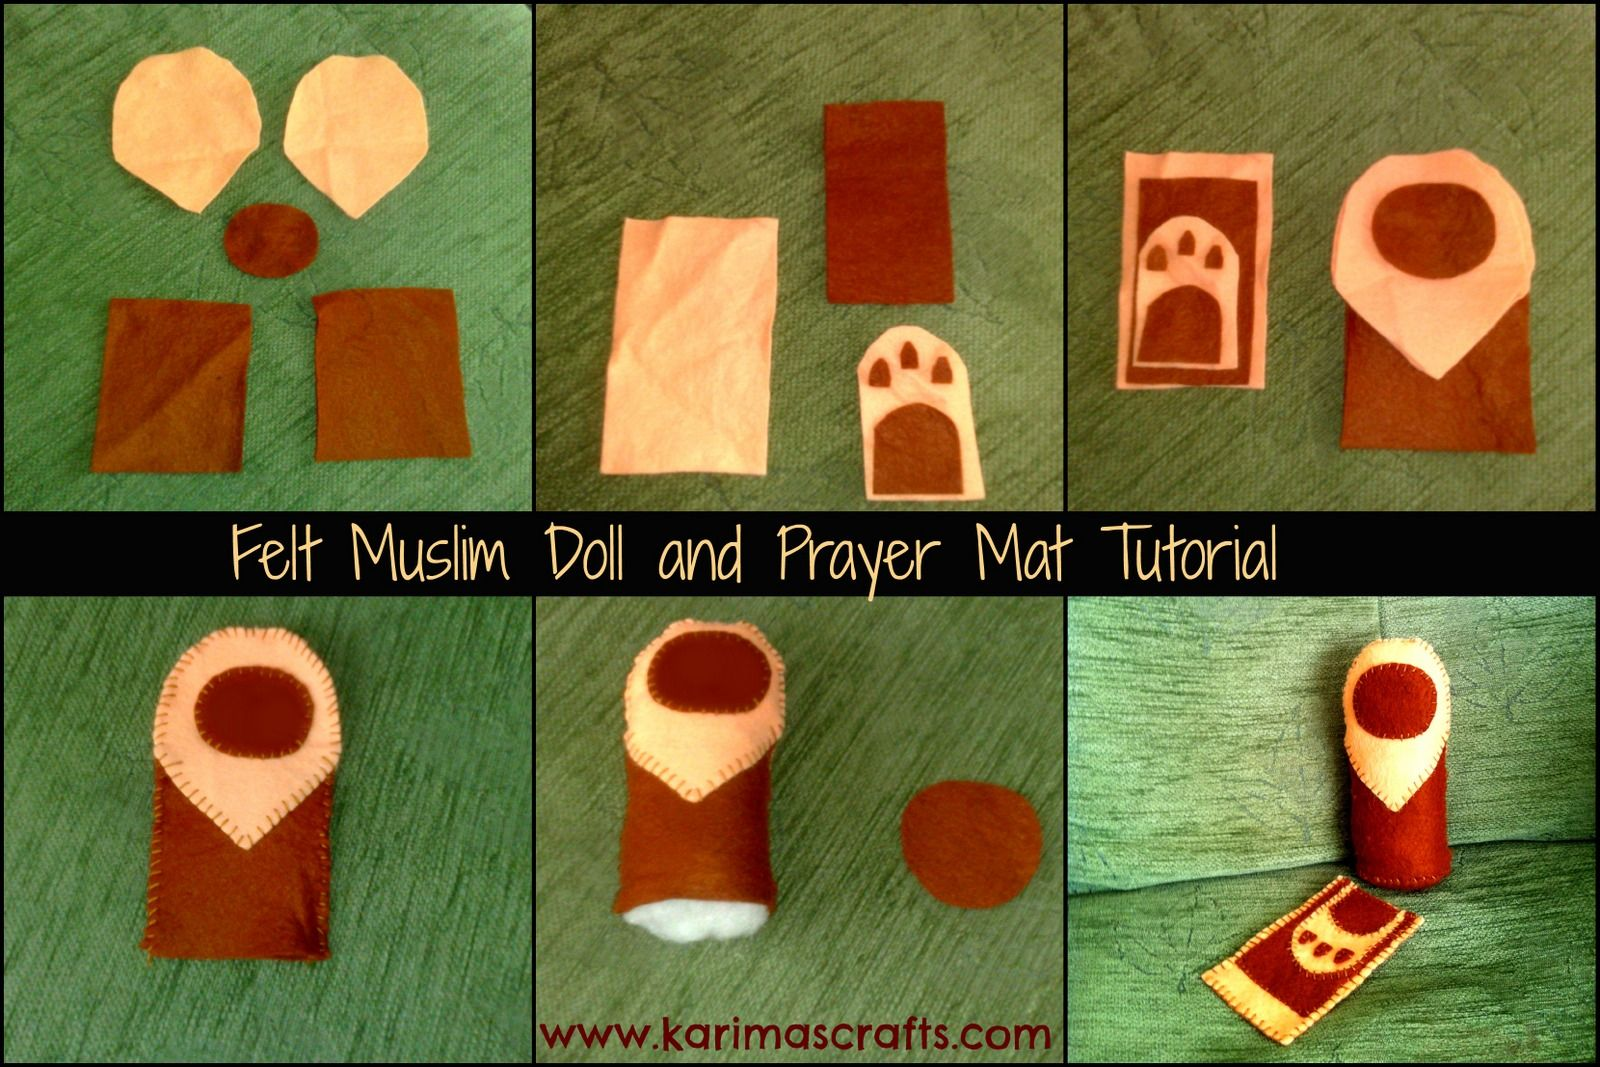 I Made The Muslim Doll And Prayer Mat After Seeing A